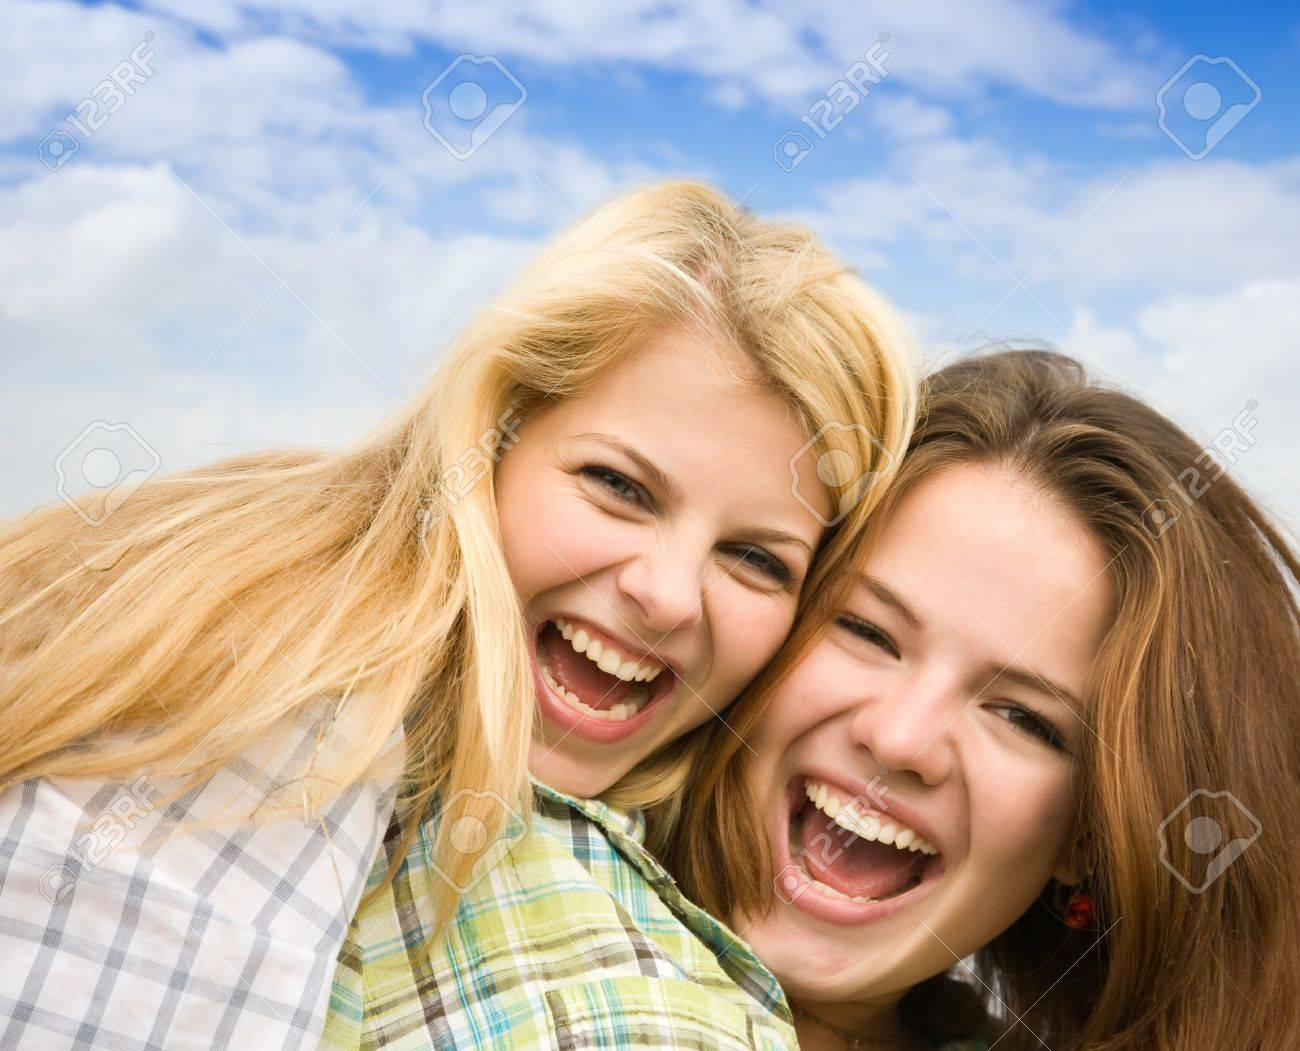 Two happy girls together against cloudy sky Stock Photo - 7777658